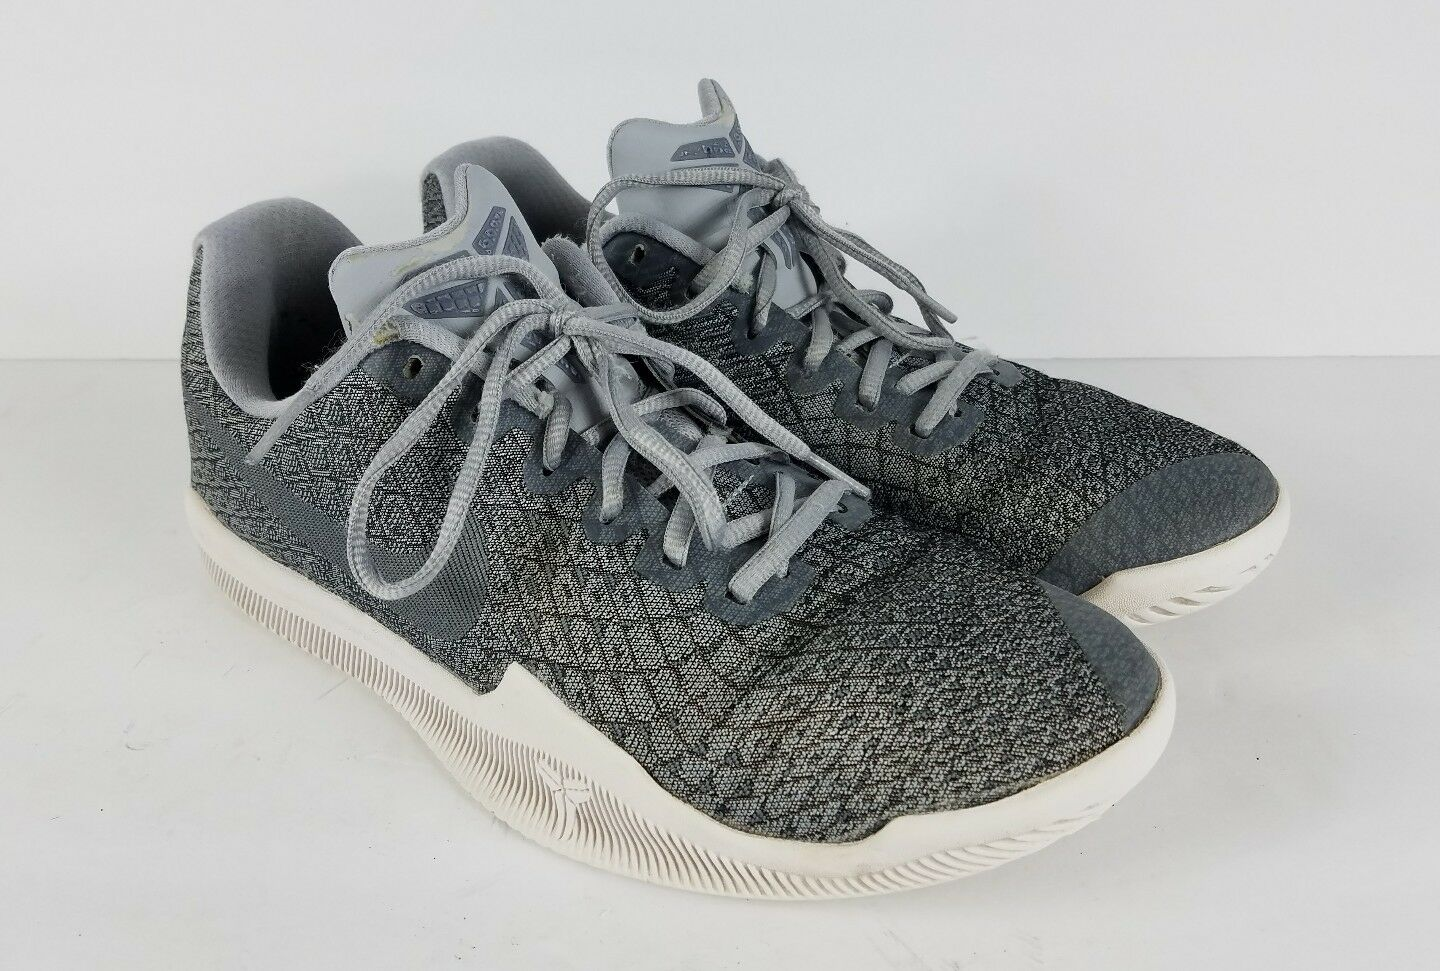 MENS Price reduction 2016 NIKE- KOBE MAMBA INSTINCT SHOES- PURE PLATINUM 852473 002 The latest discount shoes for men and women